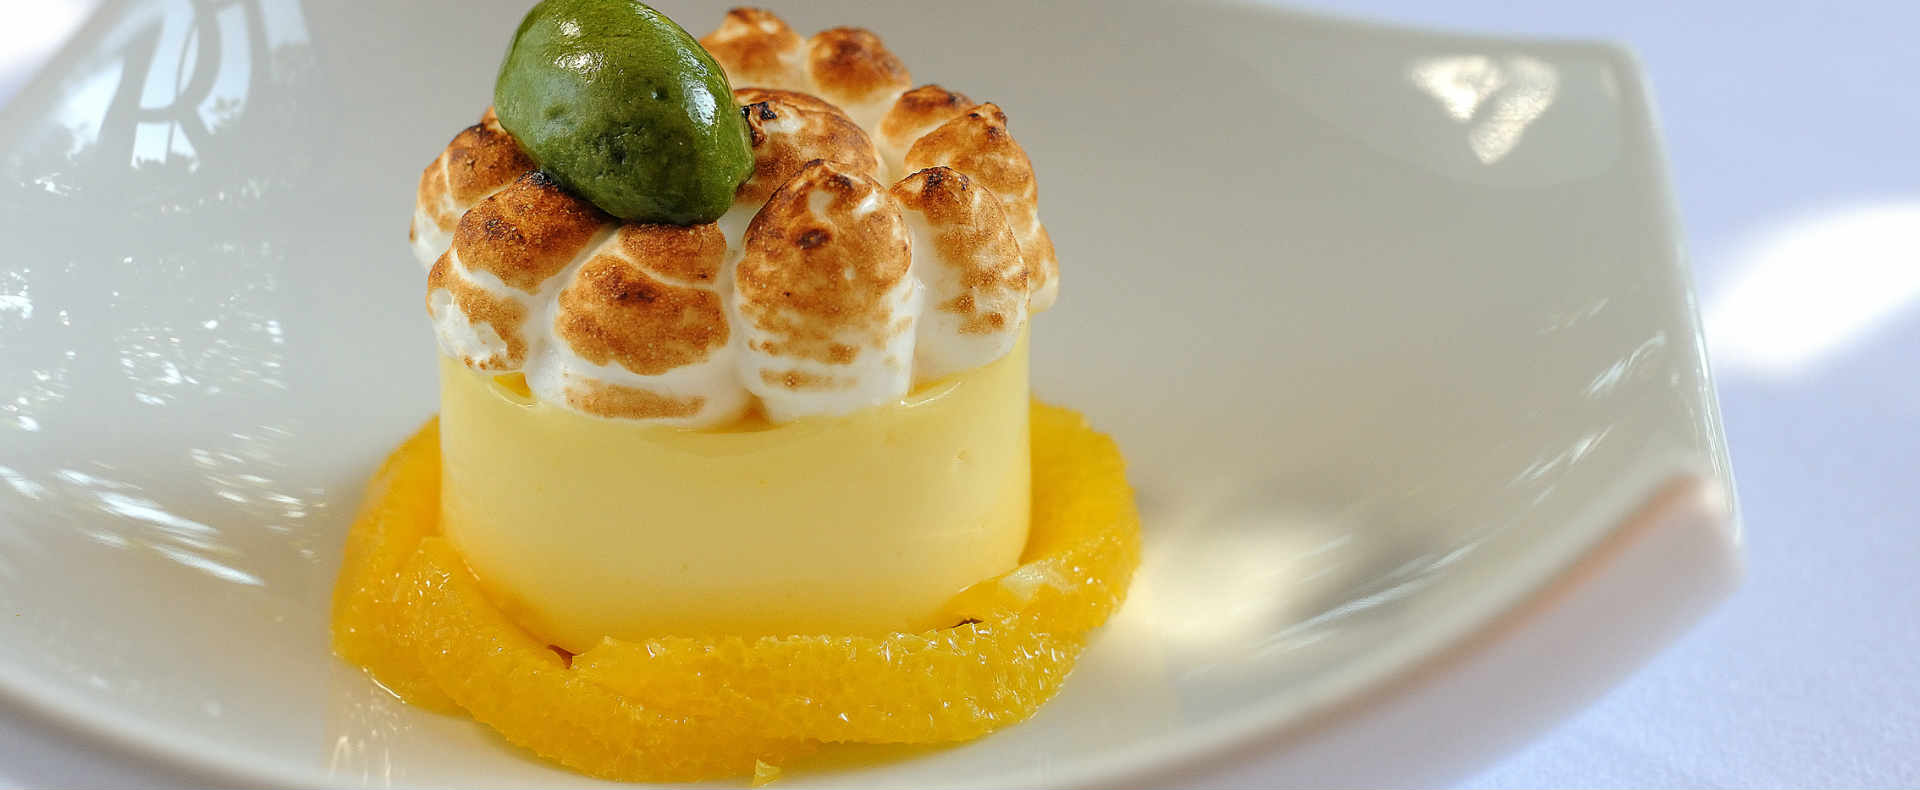 'Eat The Seasons' Recipe Lemon Meringue Pie | Montagu Arms Hotel1